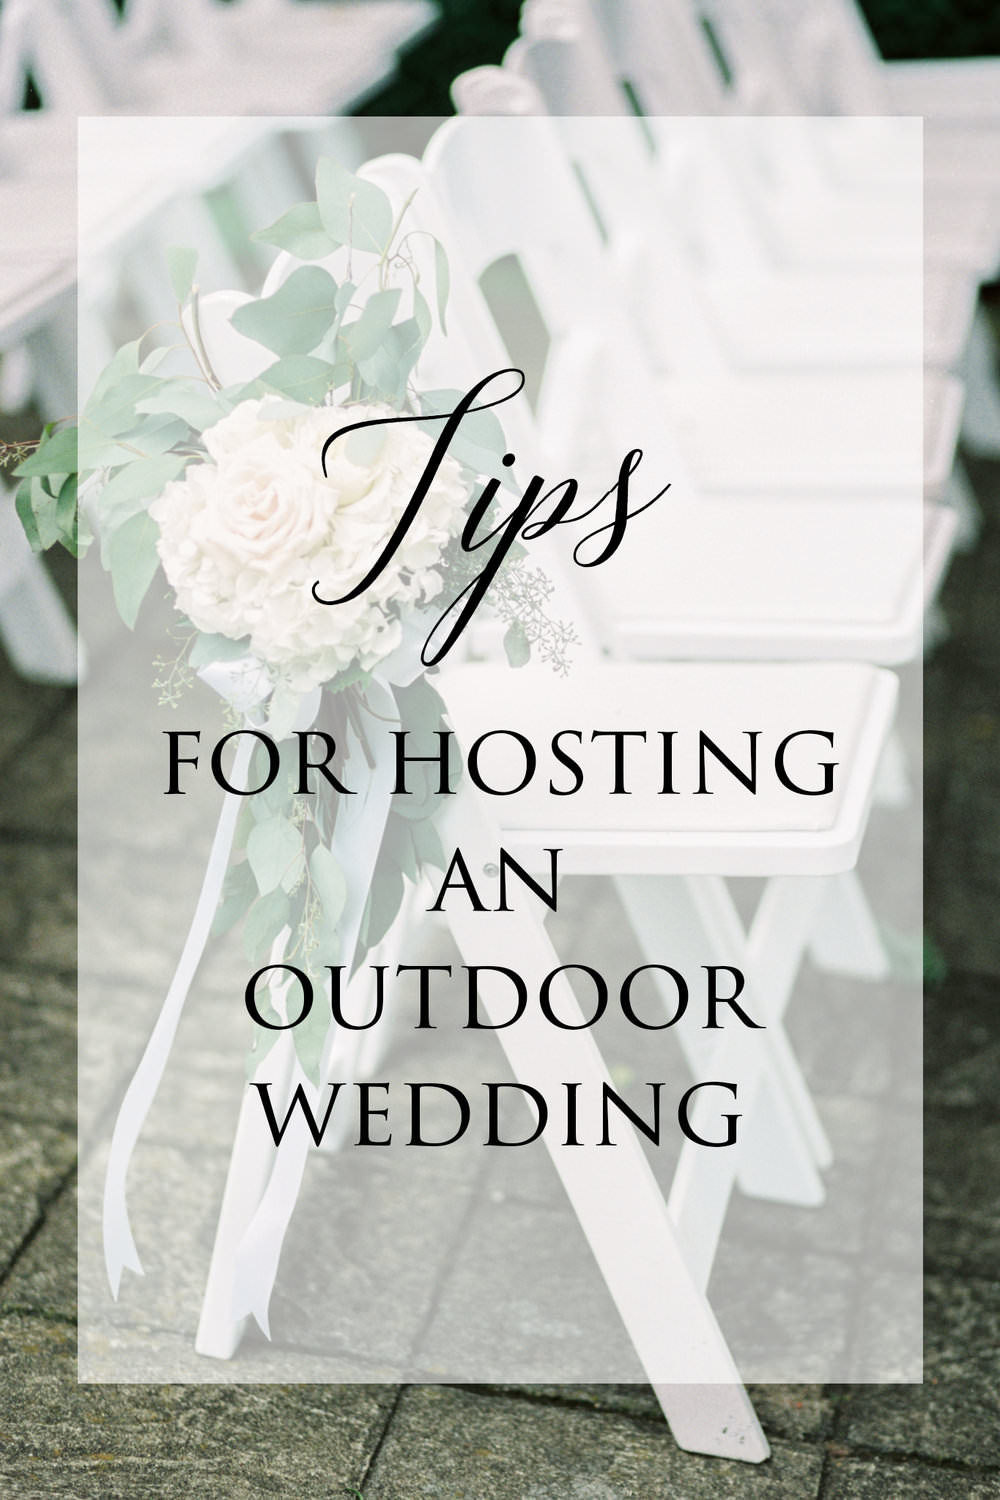 Outdoor Wedding Tips - Planning a wedding out in nature can often have a few specific challenges that ought to be considered well in advance of your big day. Here are some of our top tidbits of advice when it comes to hosting an outdoor wedding...read more